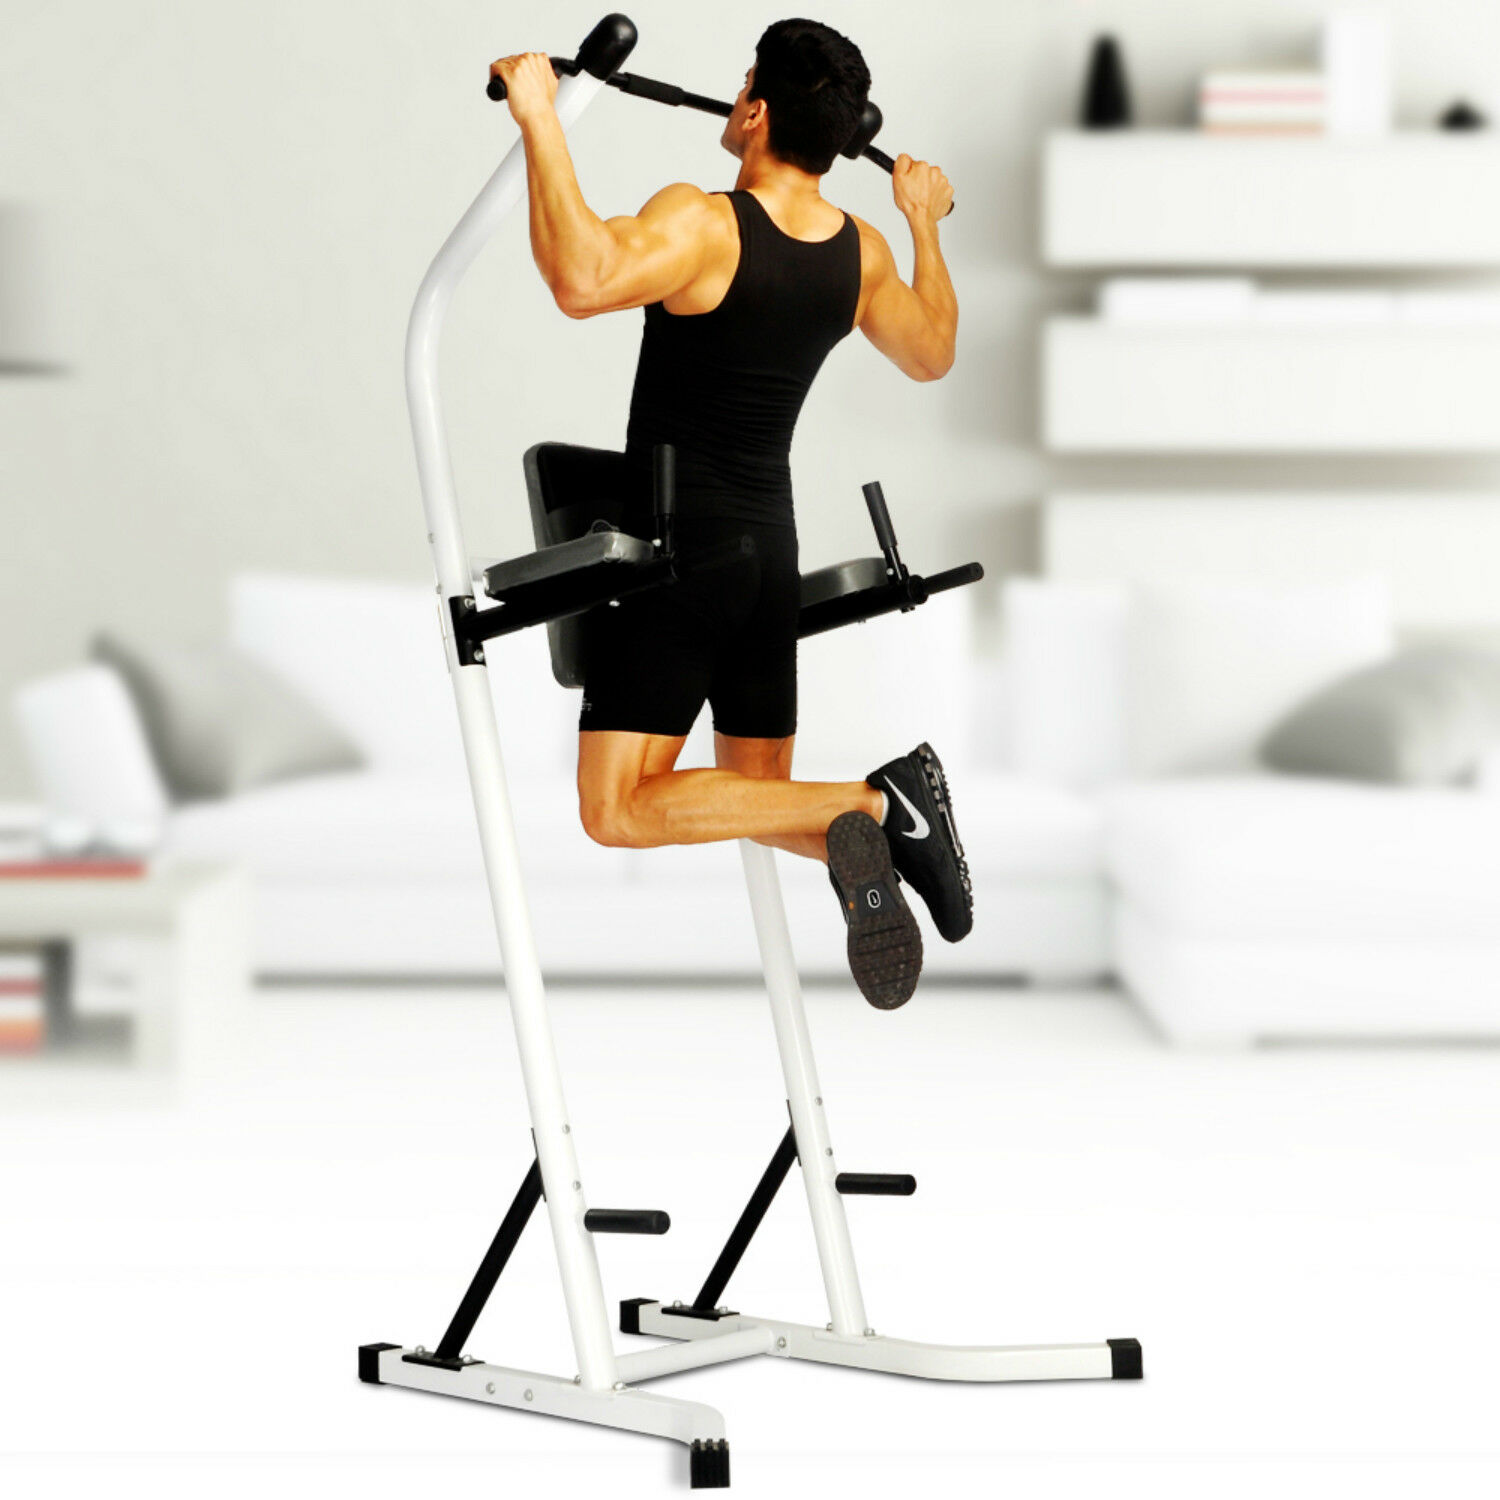 Power Tower Workout  Dip Station Pull Up Gym Training Equipment Stretch Ma ne  official website